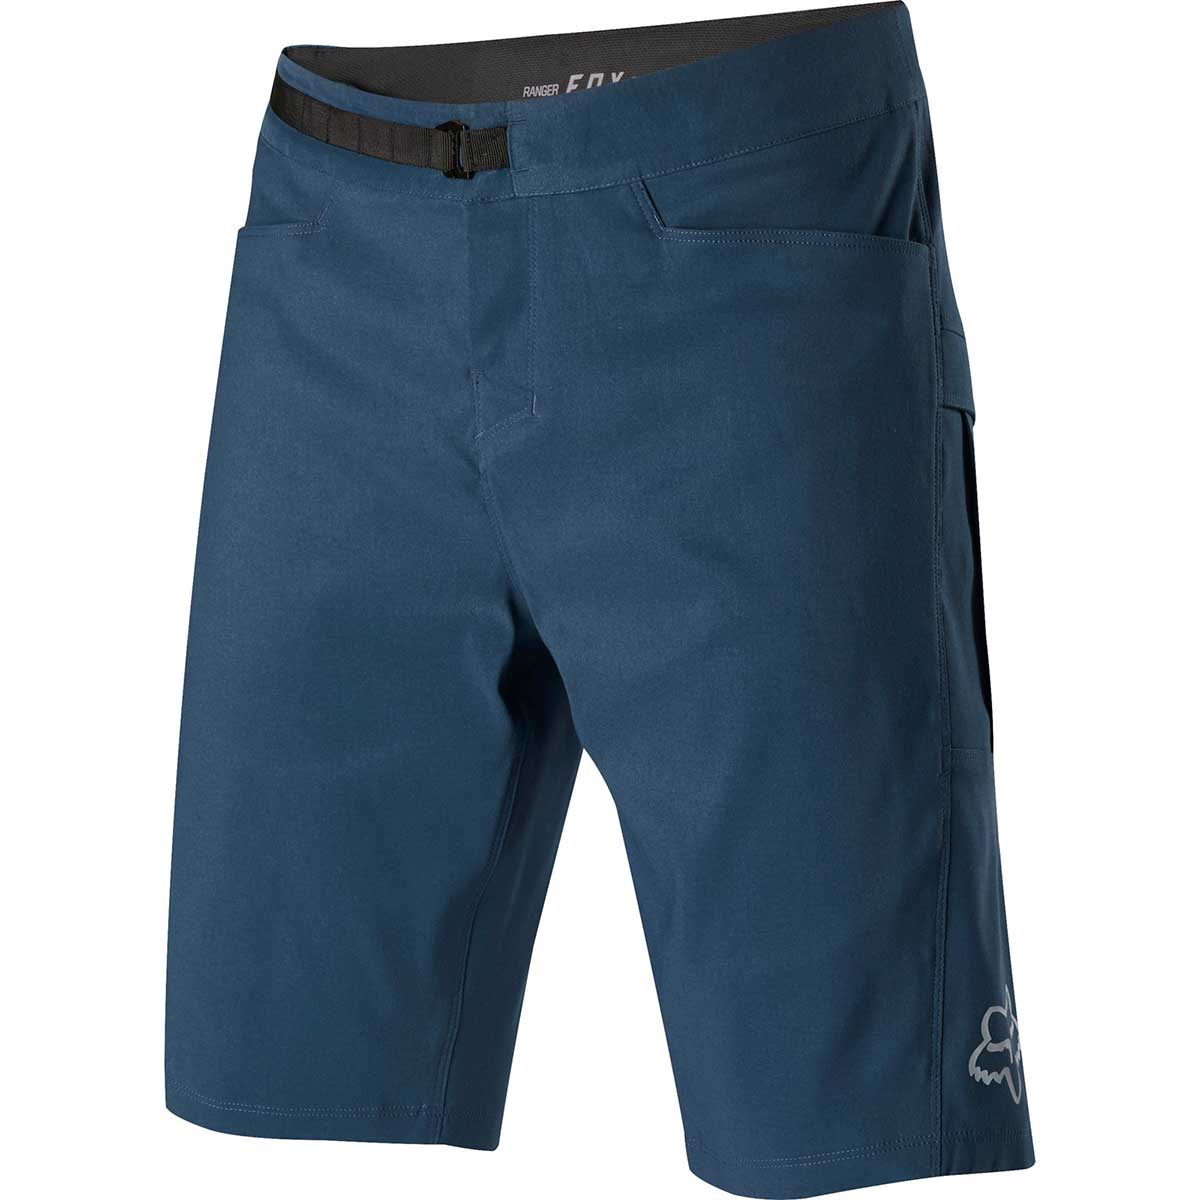 Fox men's Ranger Cargo bike short in Navy